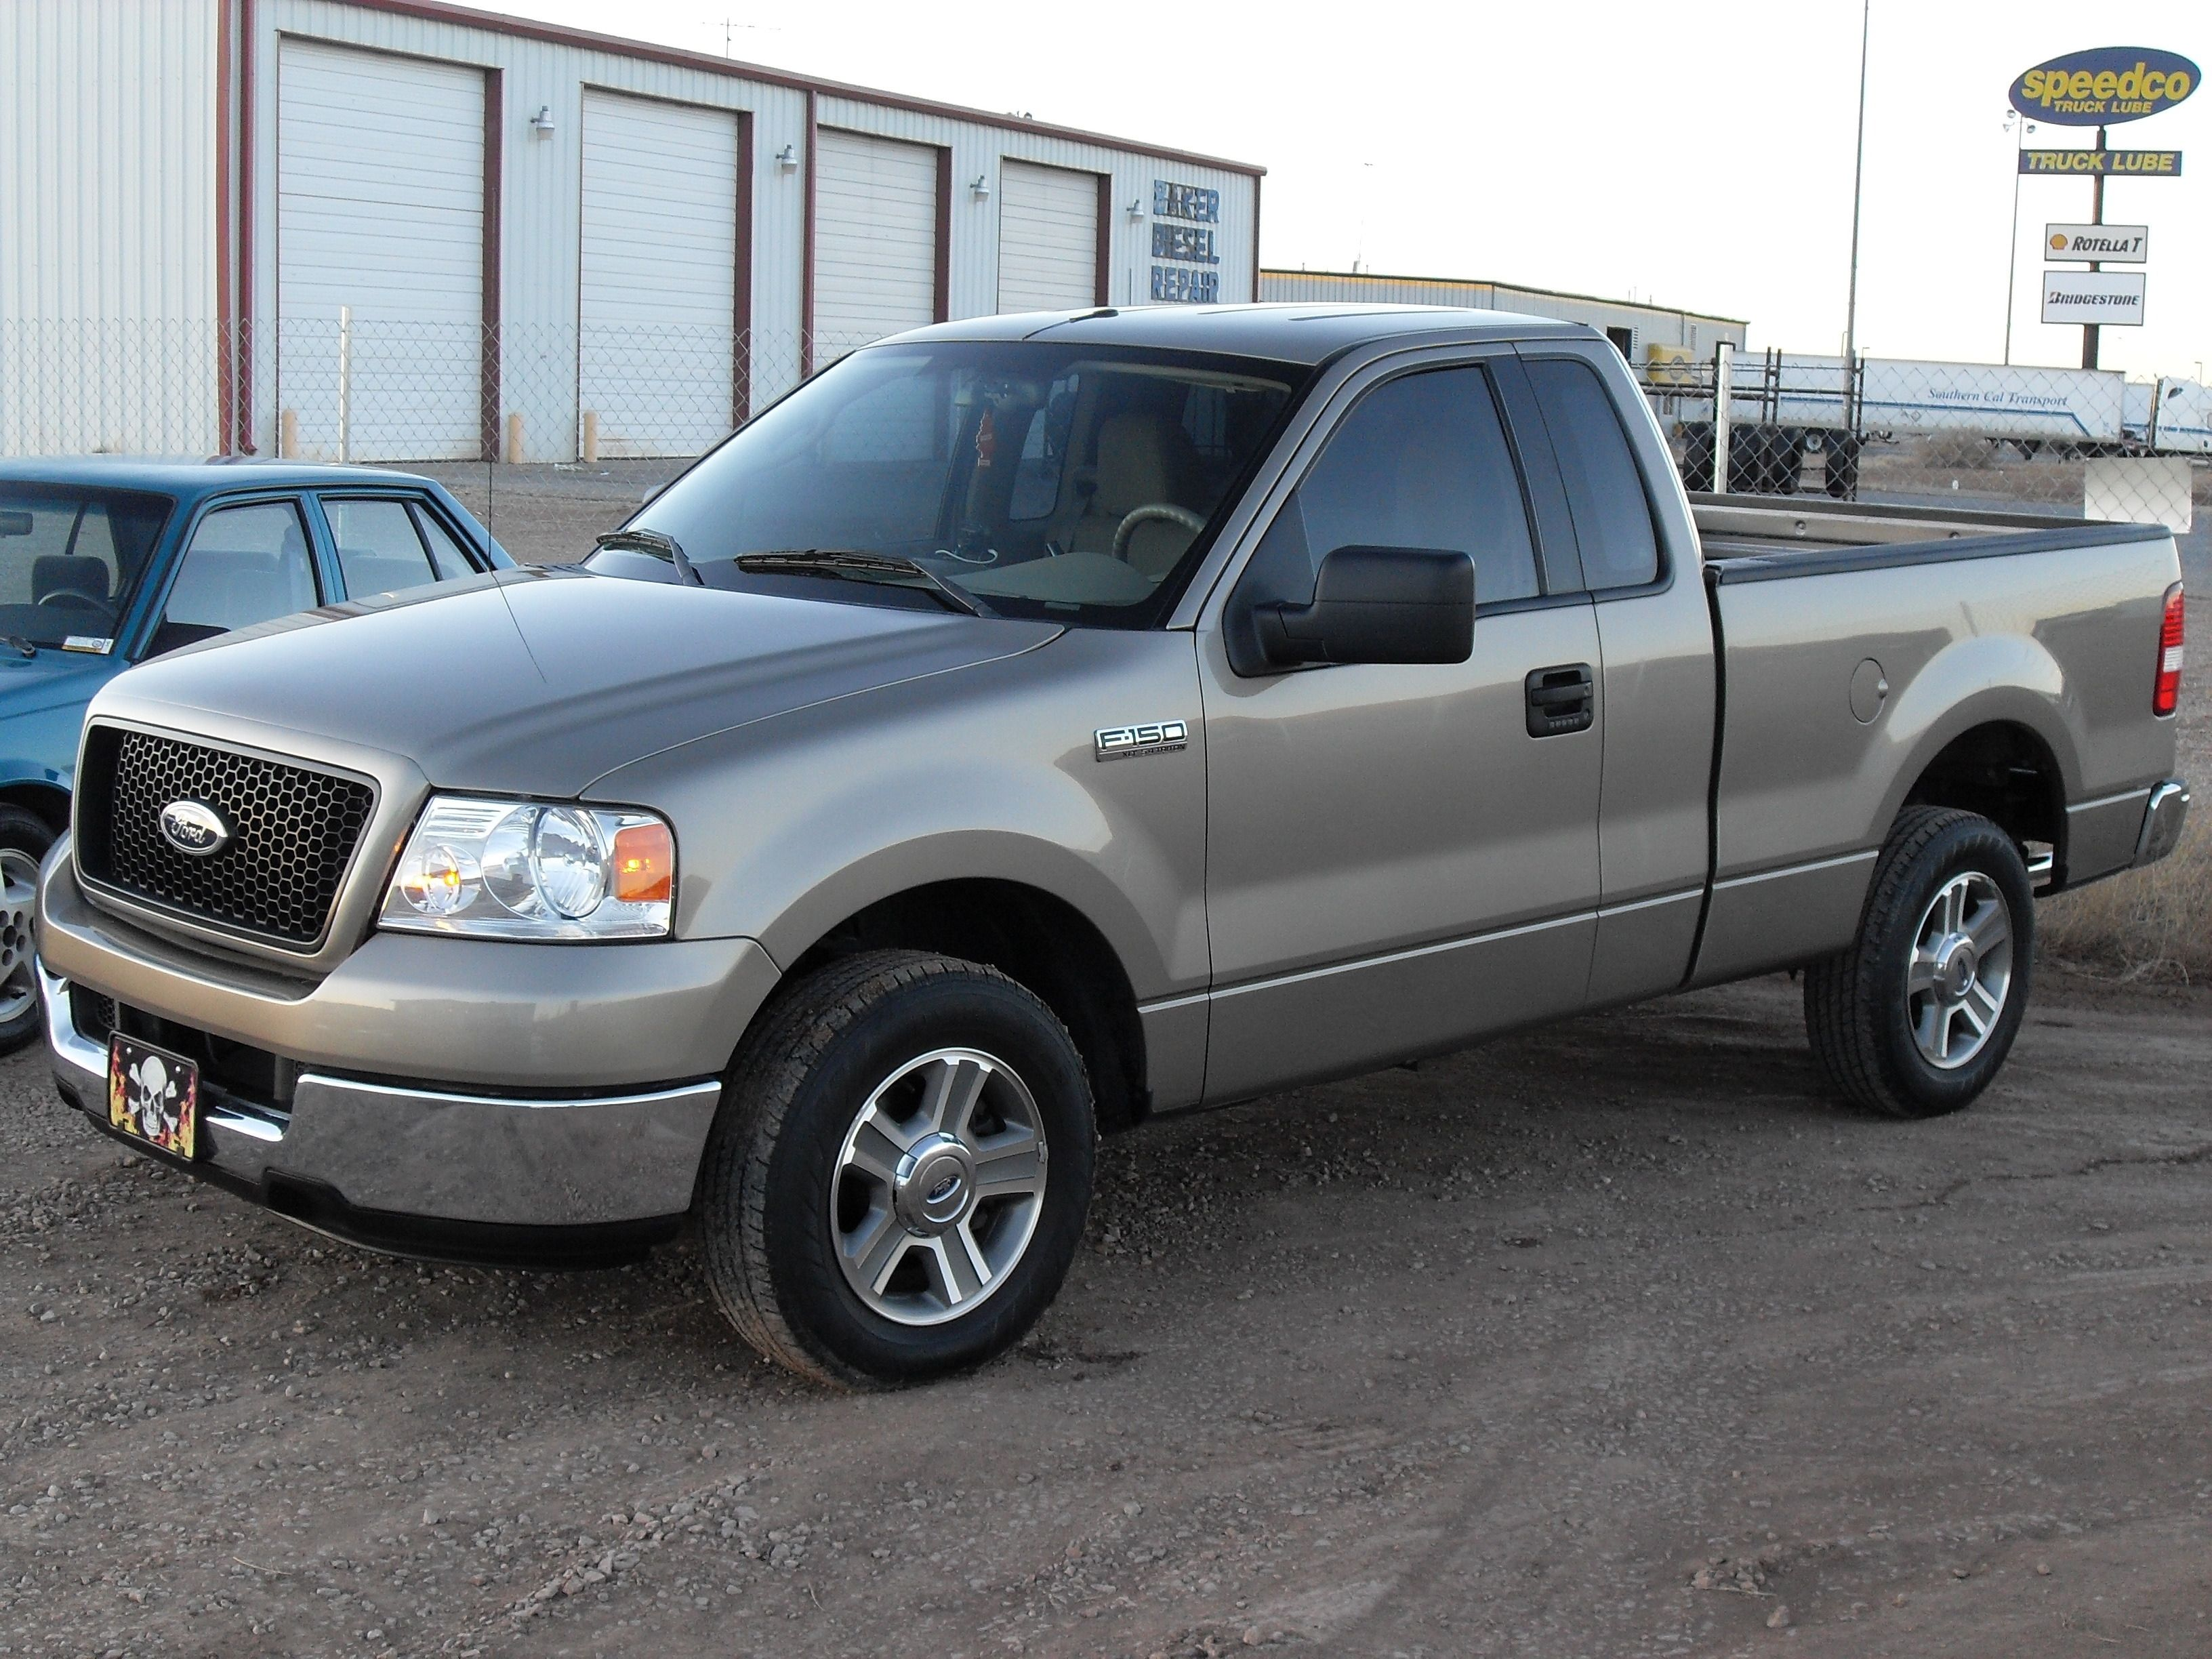 Beautiful 2005 Ford F150 Regular Cab Ford F150 Regular Cab Ford